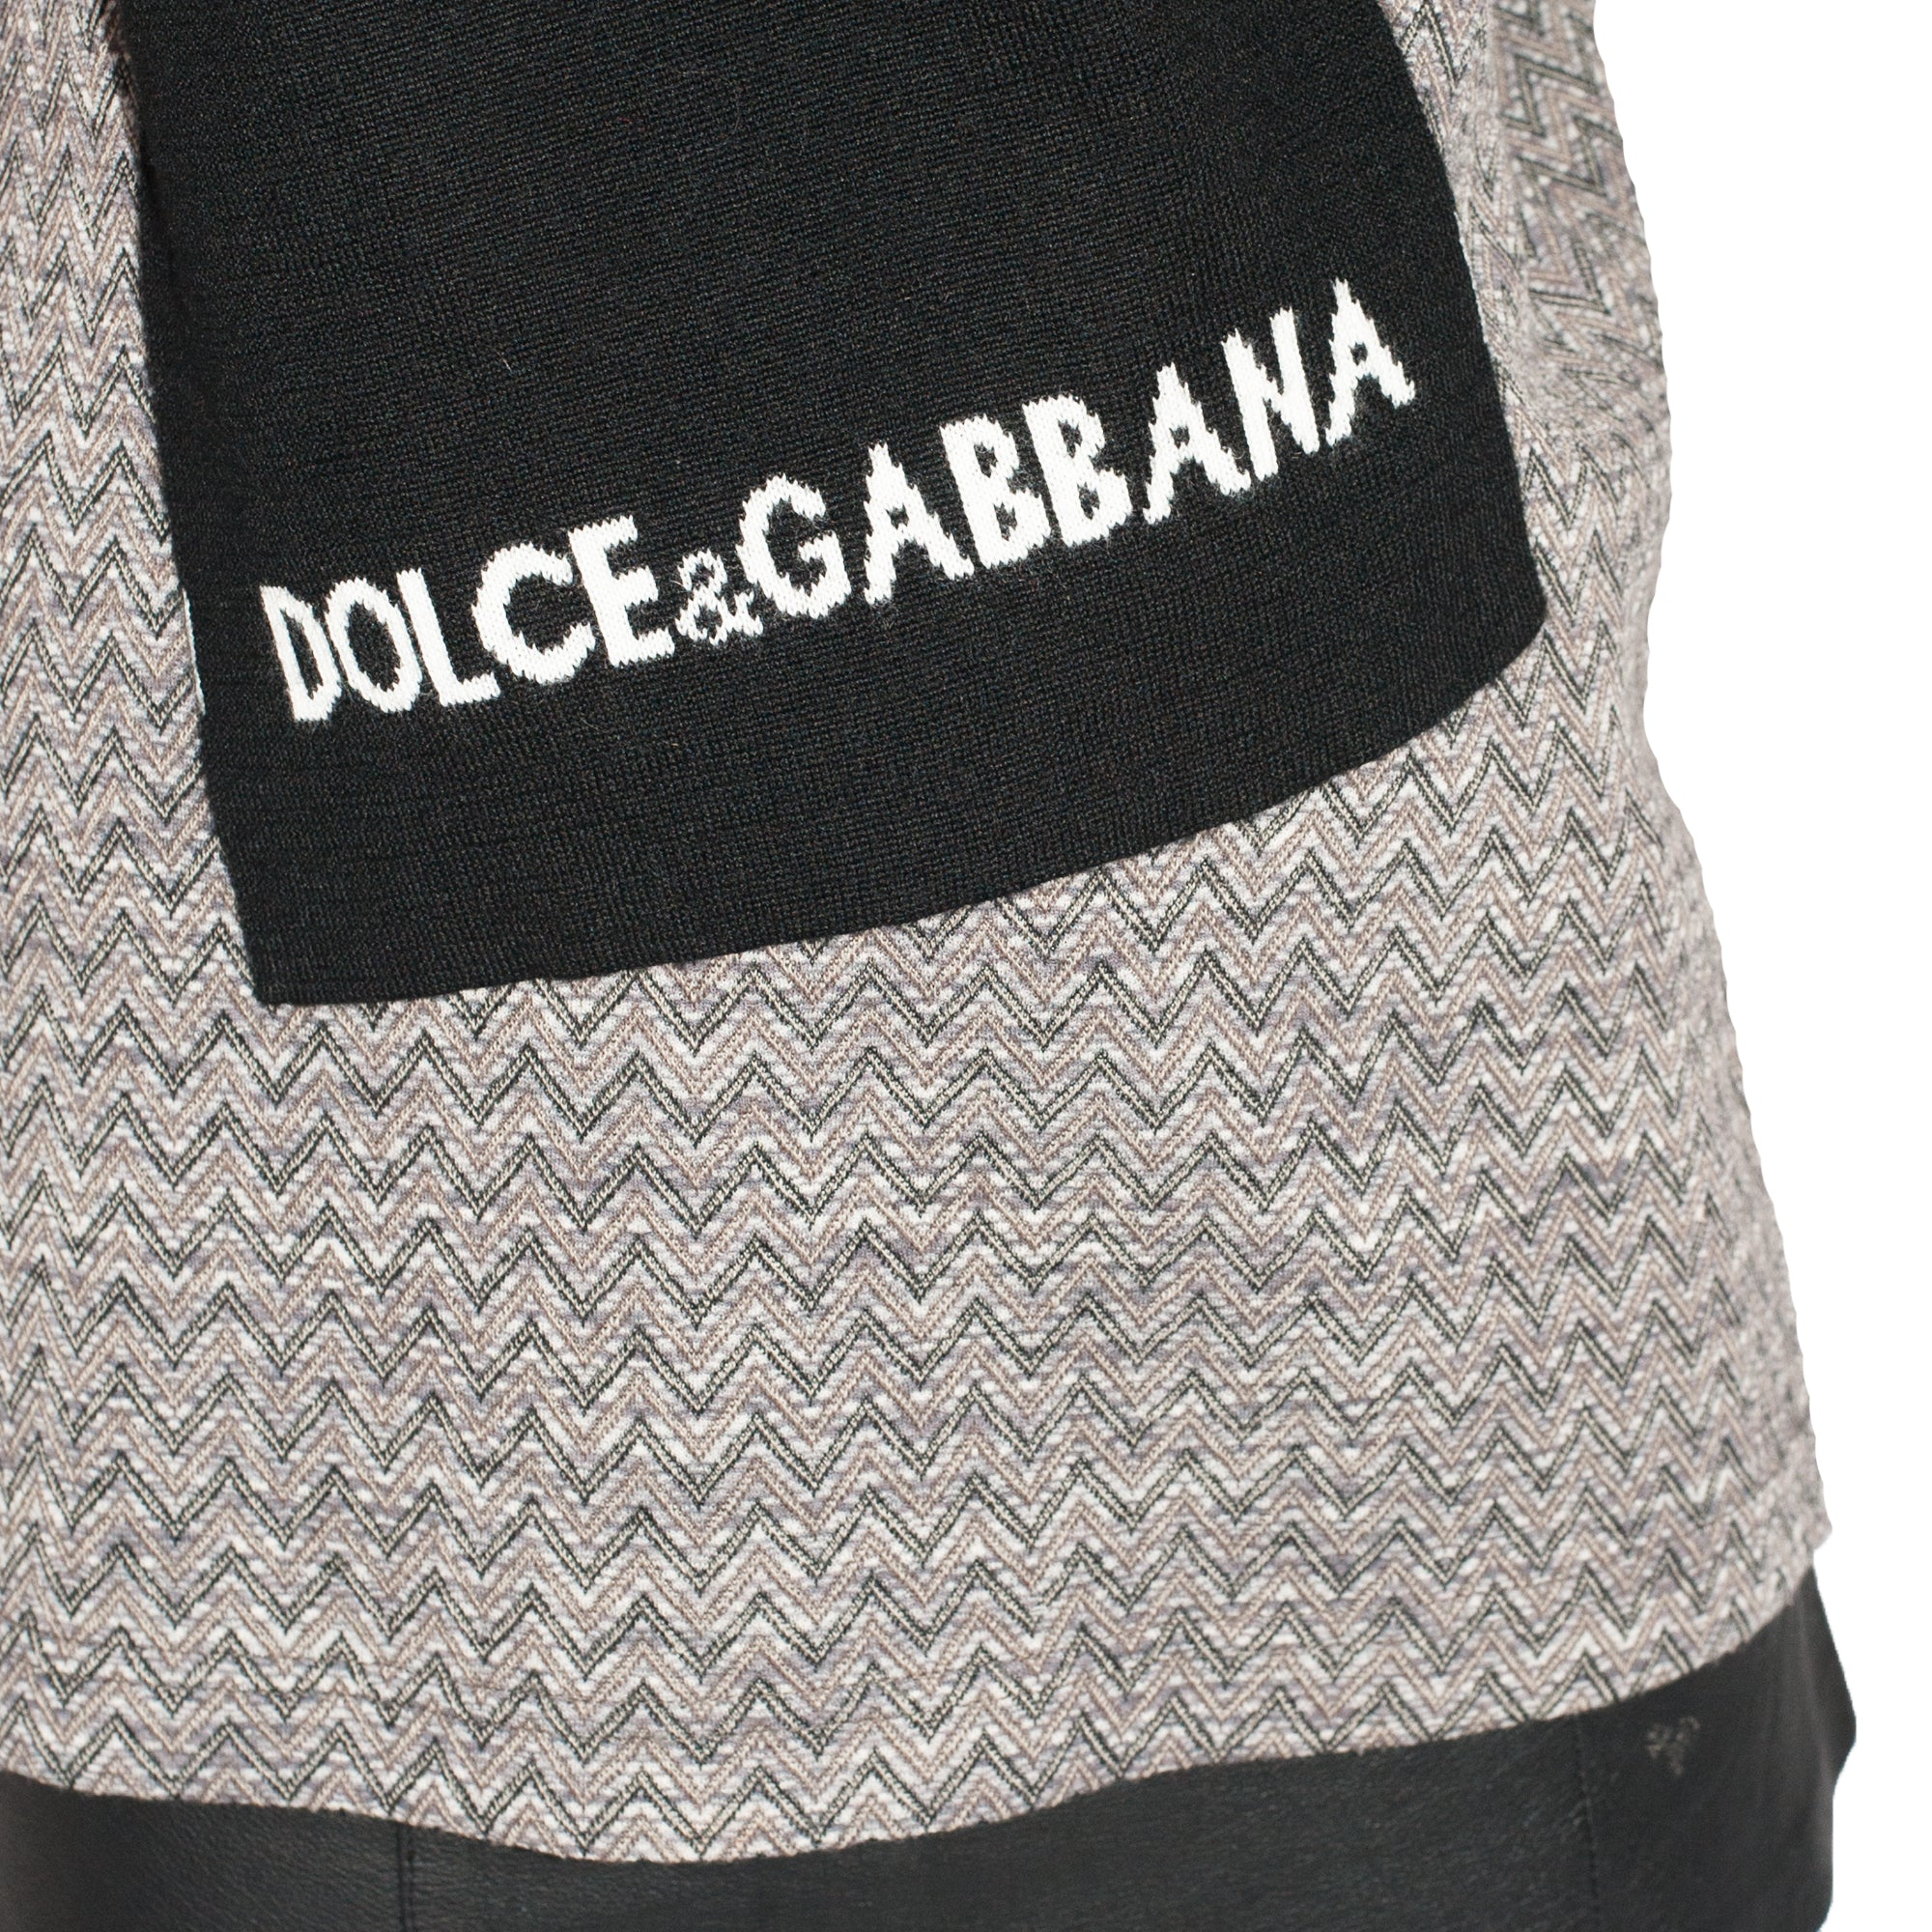 Dolce and Gabbana Logo Scarf (Black/White) OS